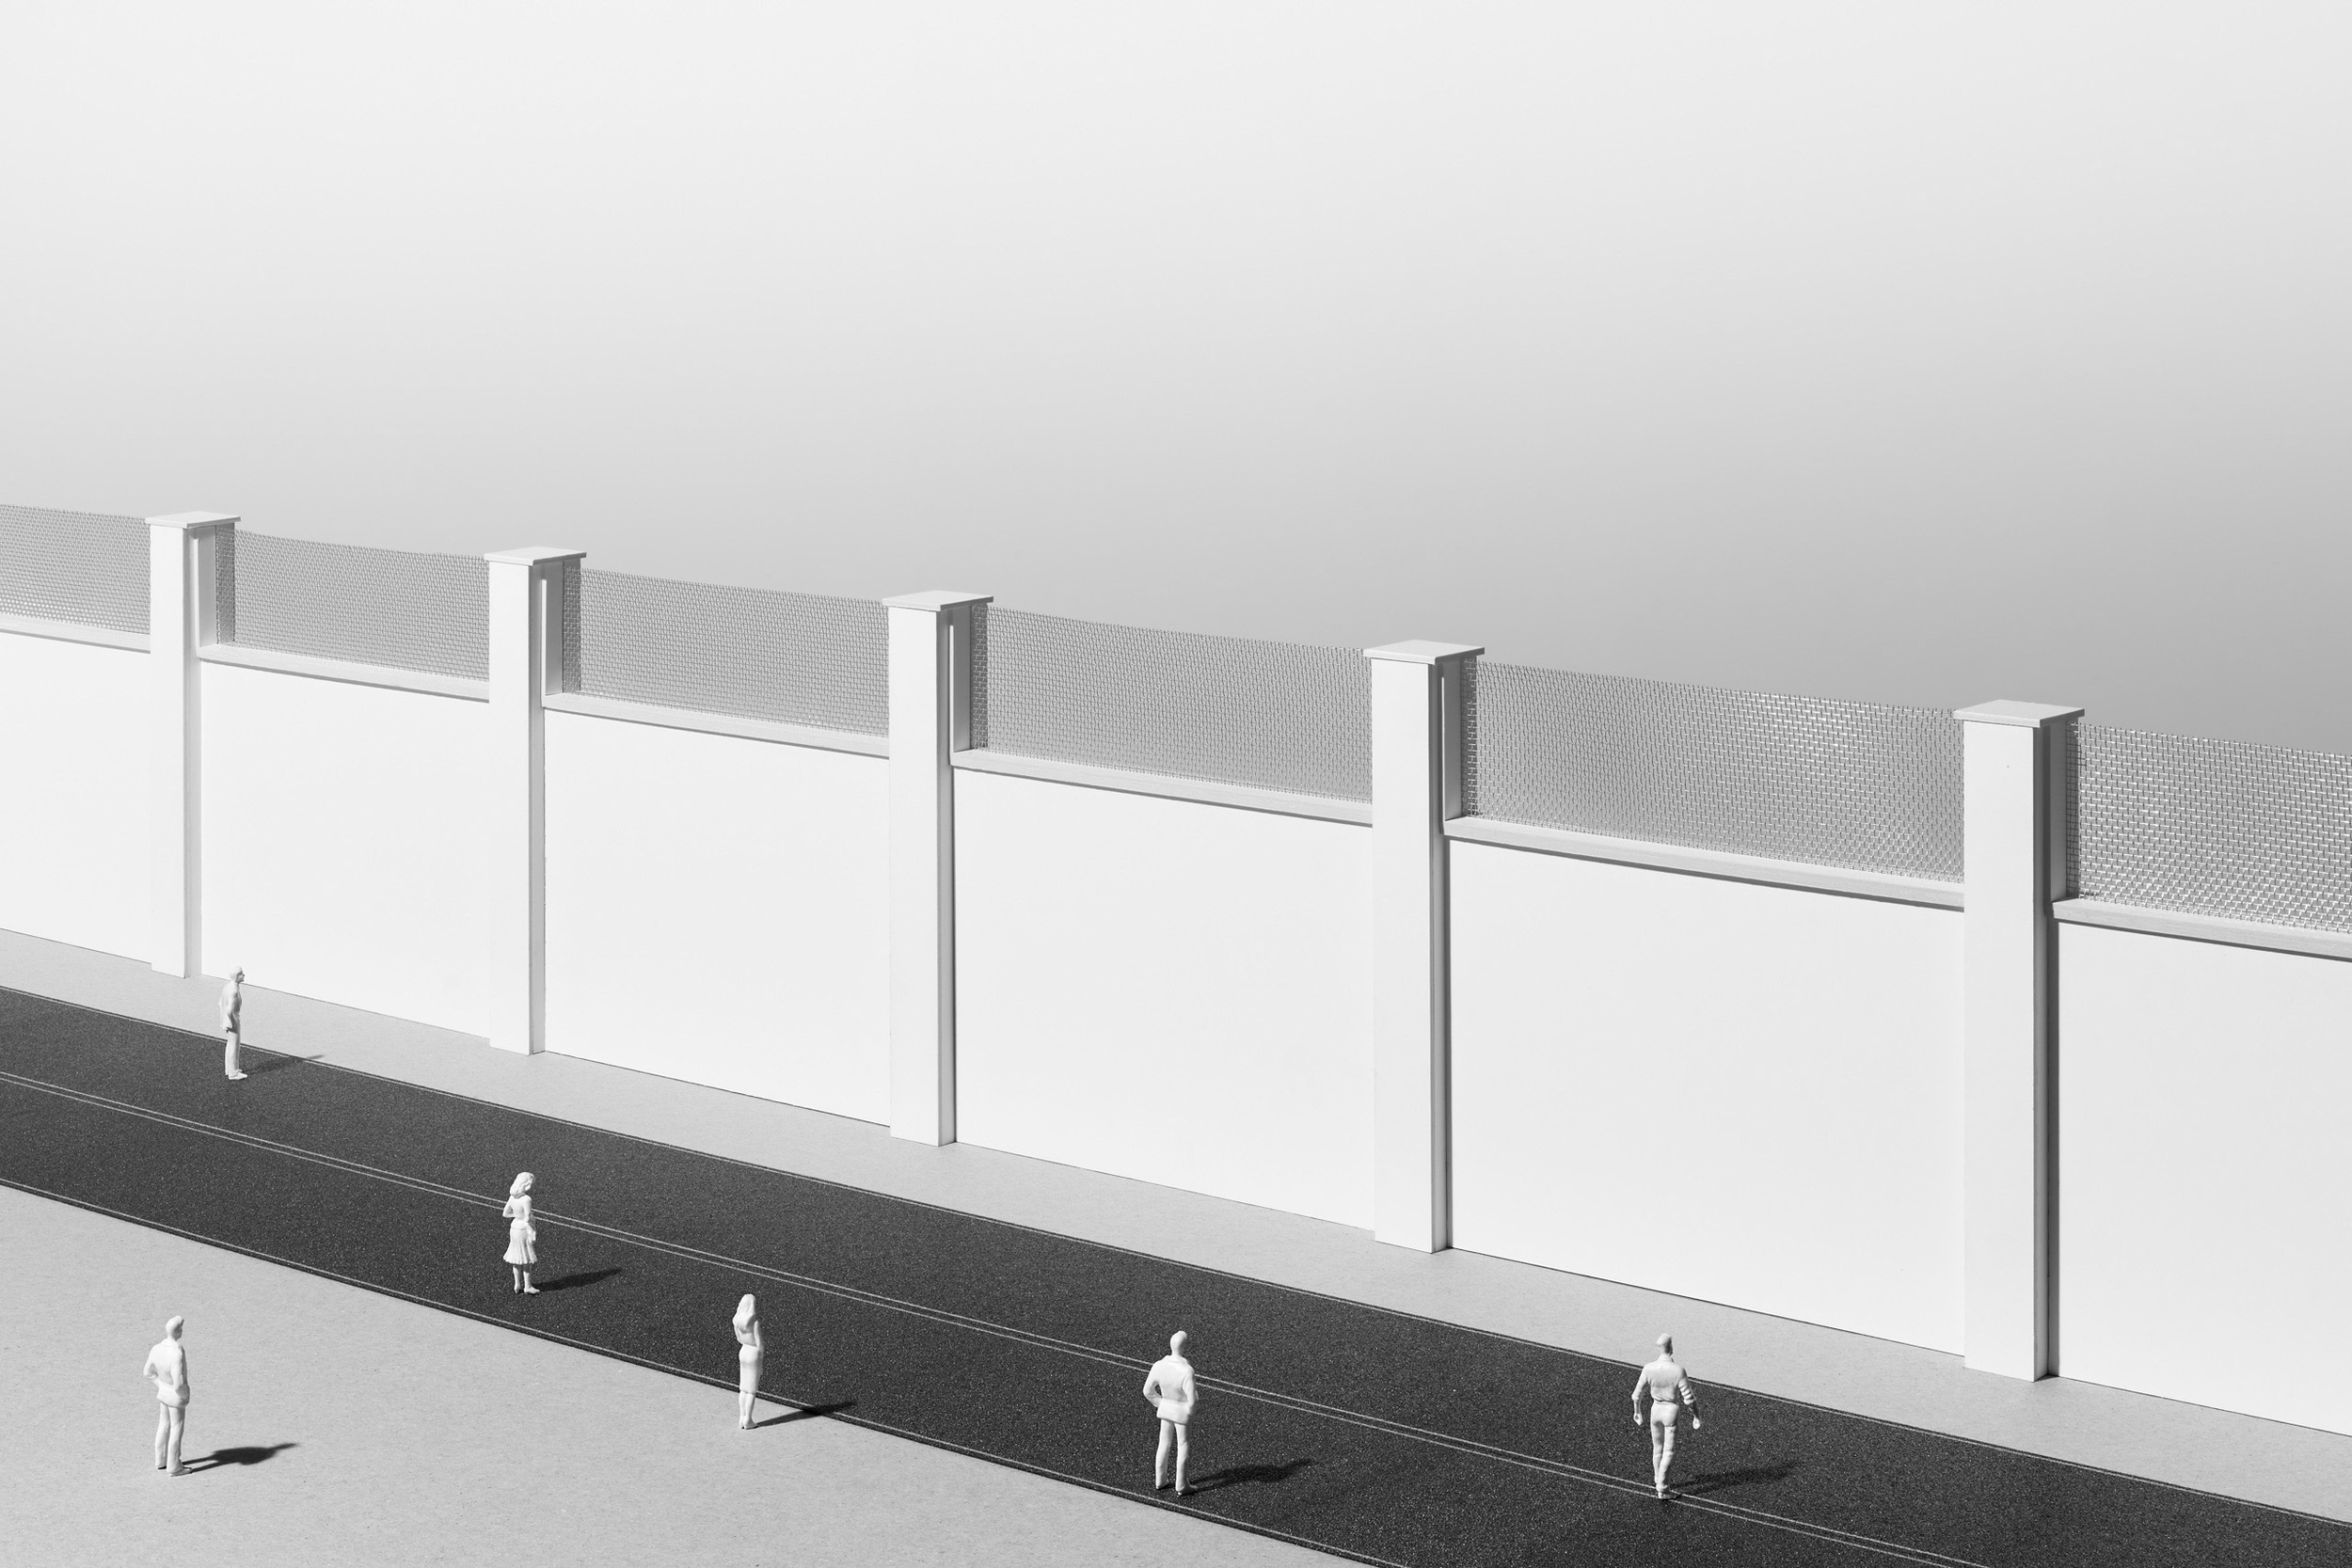 Untitled (Wall) 2013